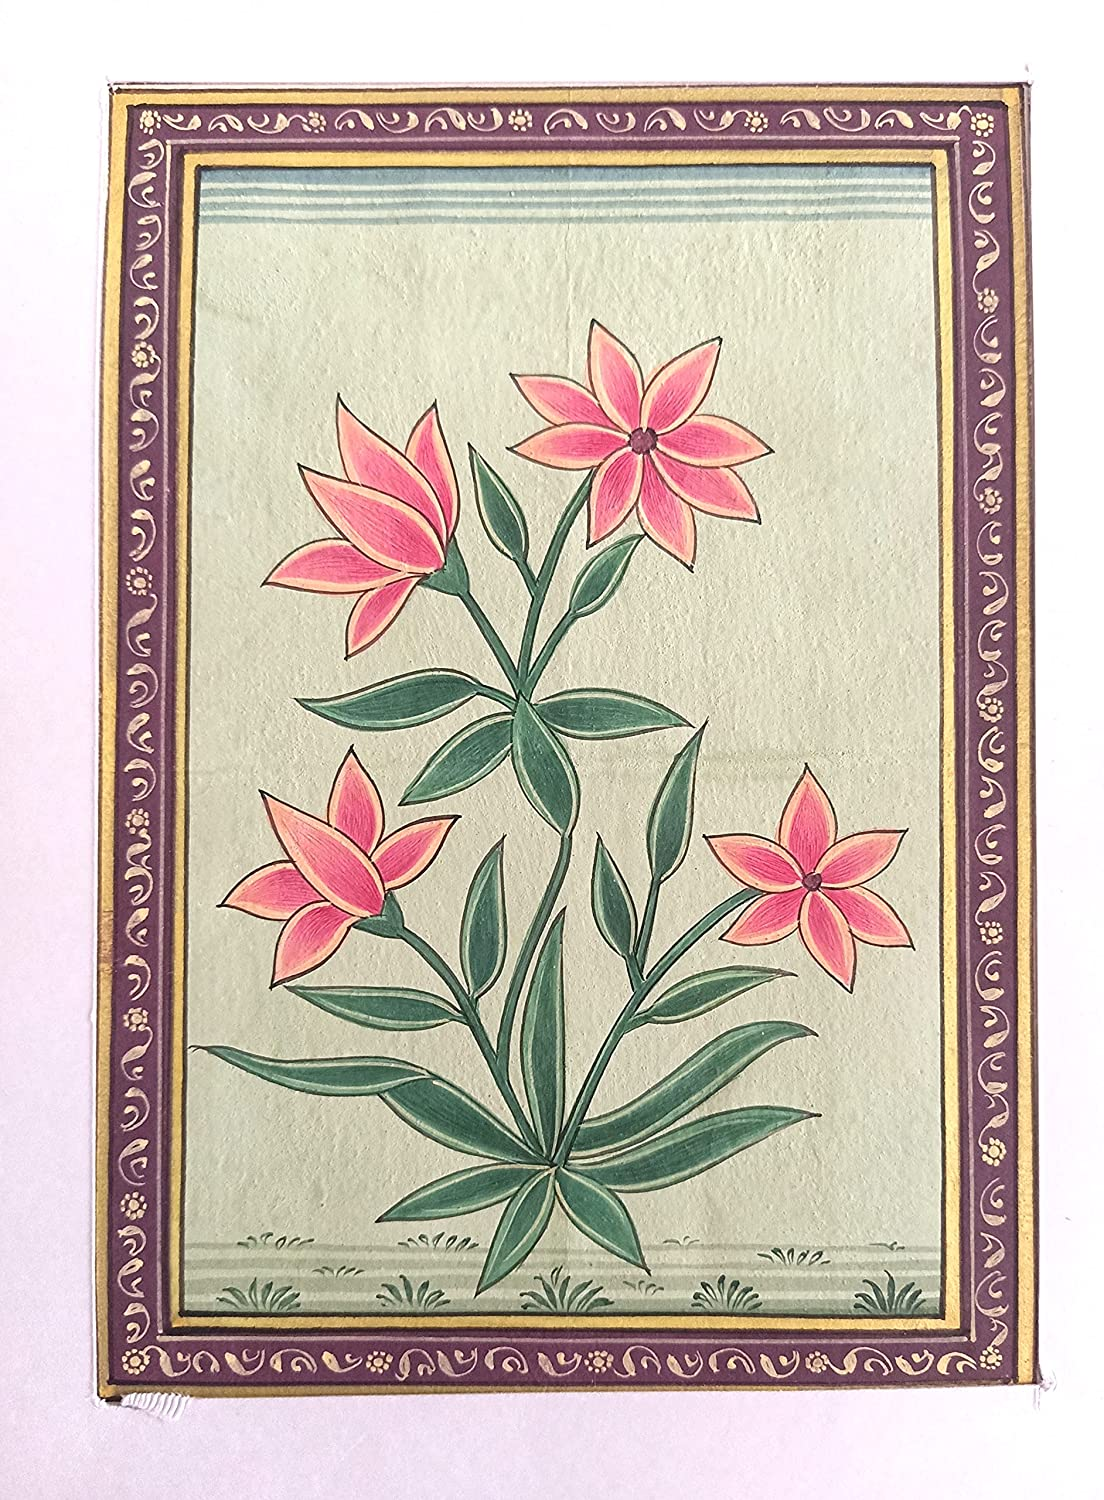 Indian Animer and price revision Flower Handmade Miniature Painting Same day shipping Artwork Pape Floral On